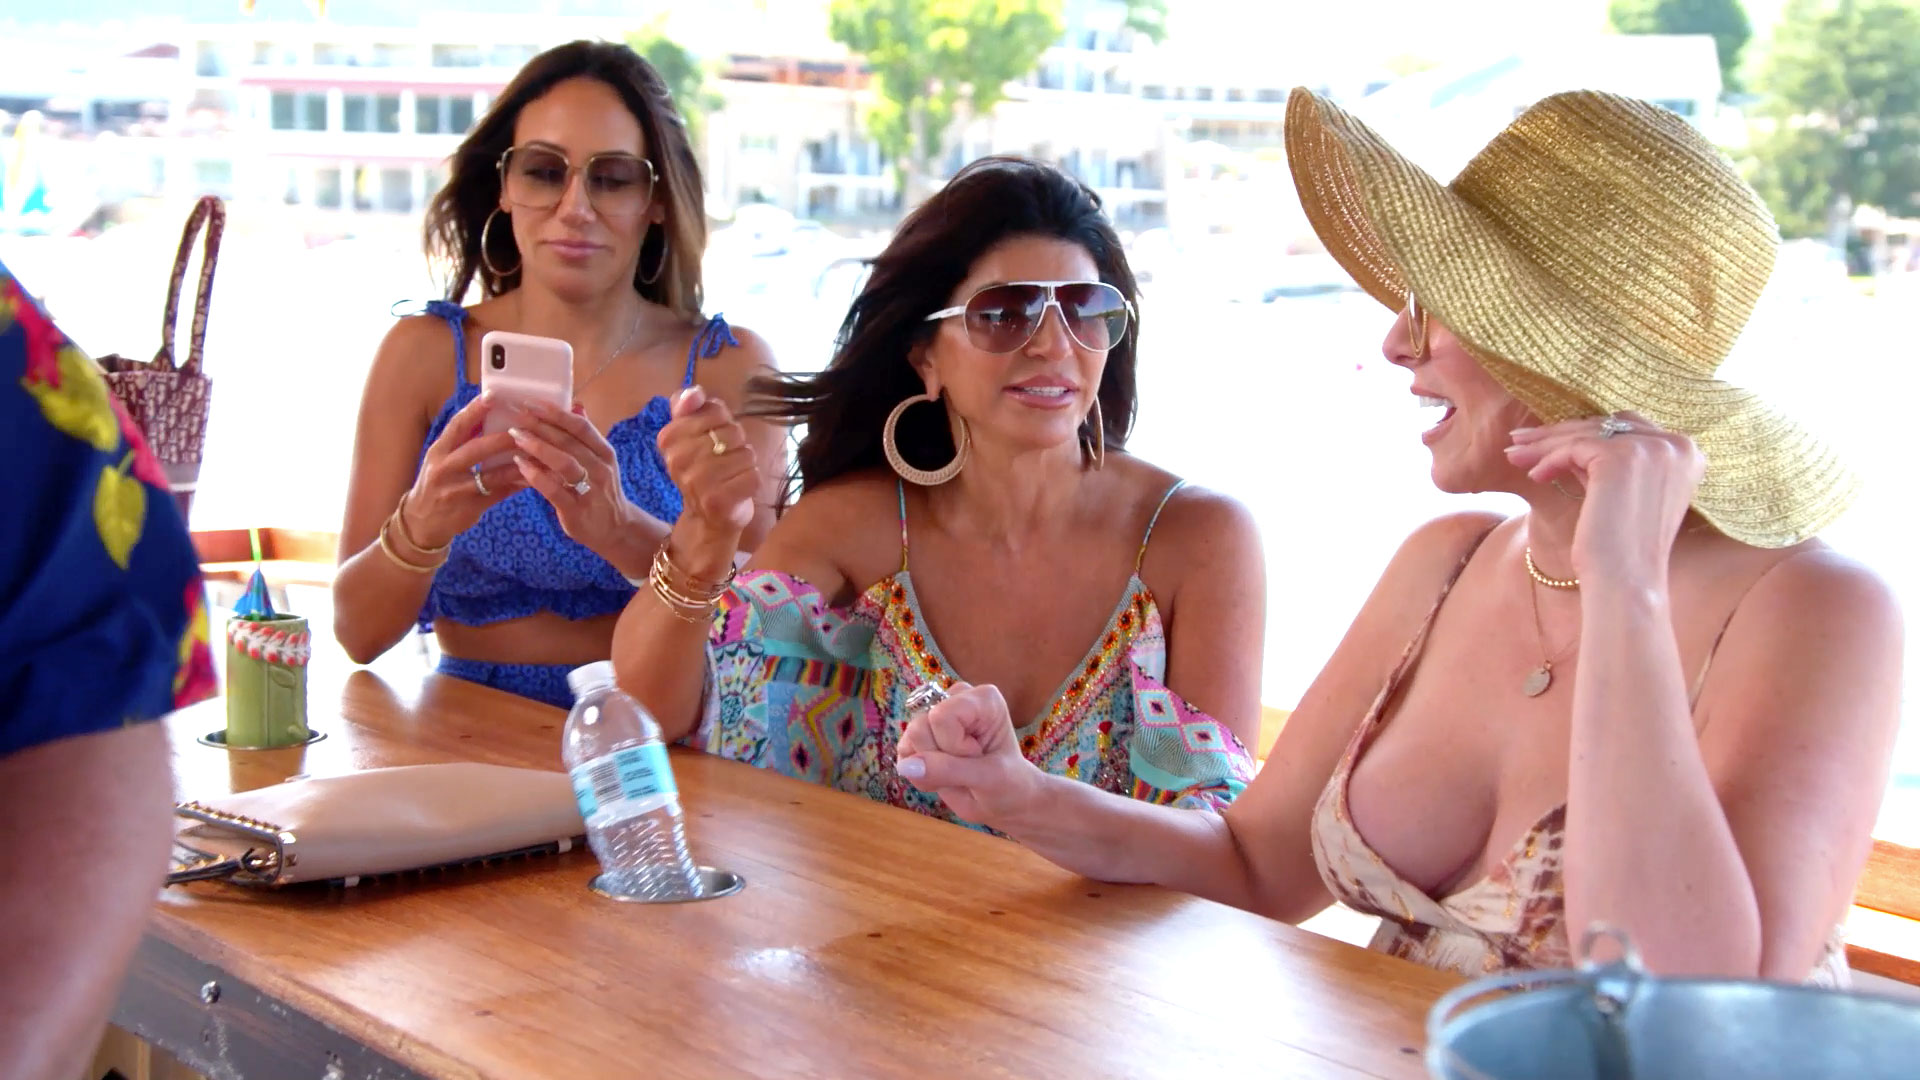 Your First Look at The Real Housewives of New Jersey Season 11